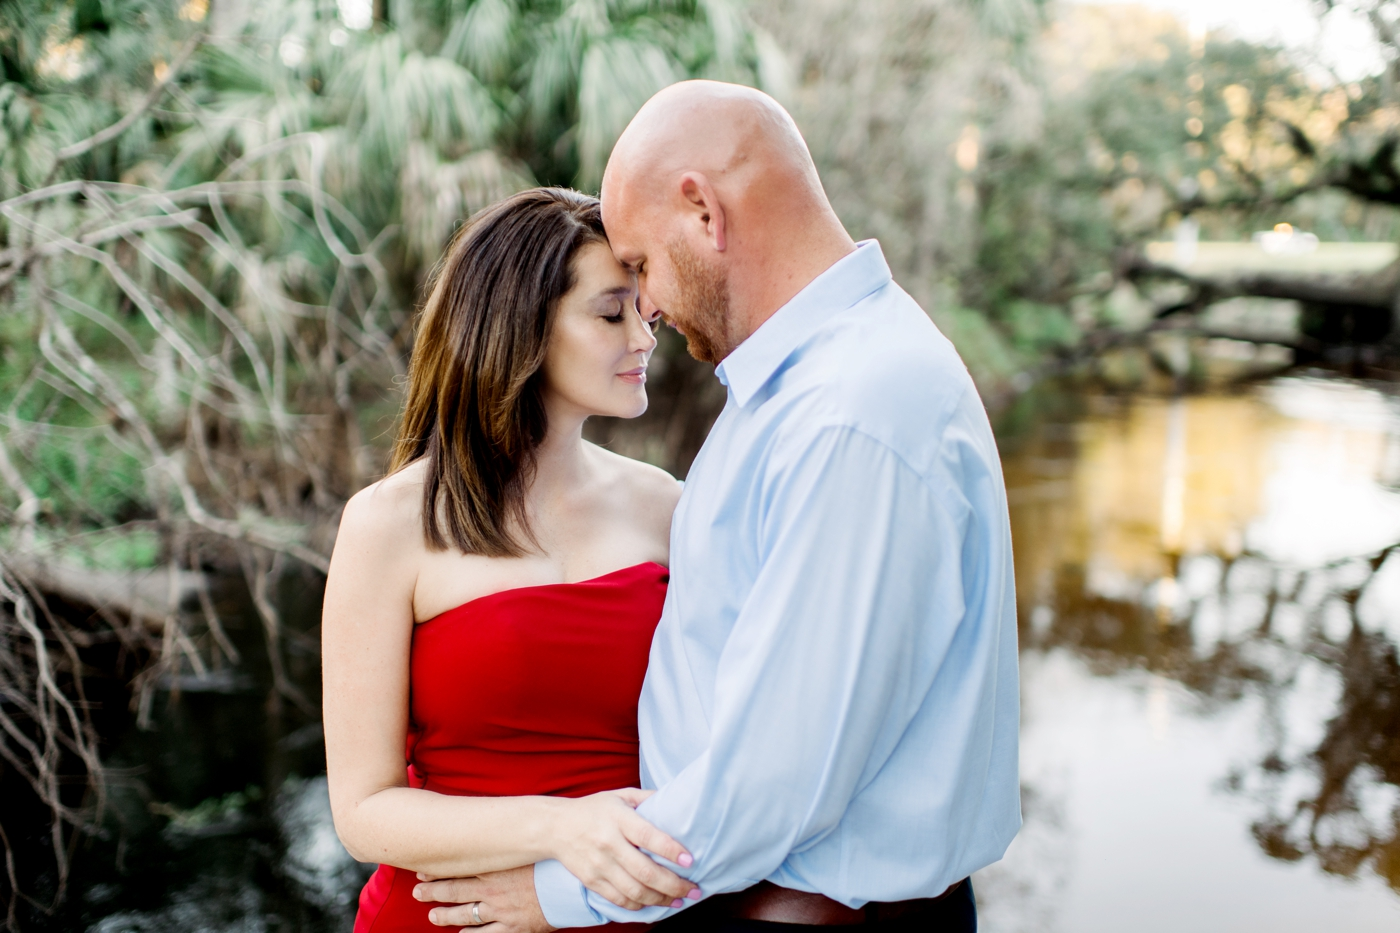 winter garden maternity photography